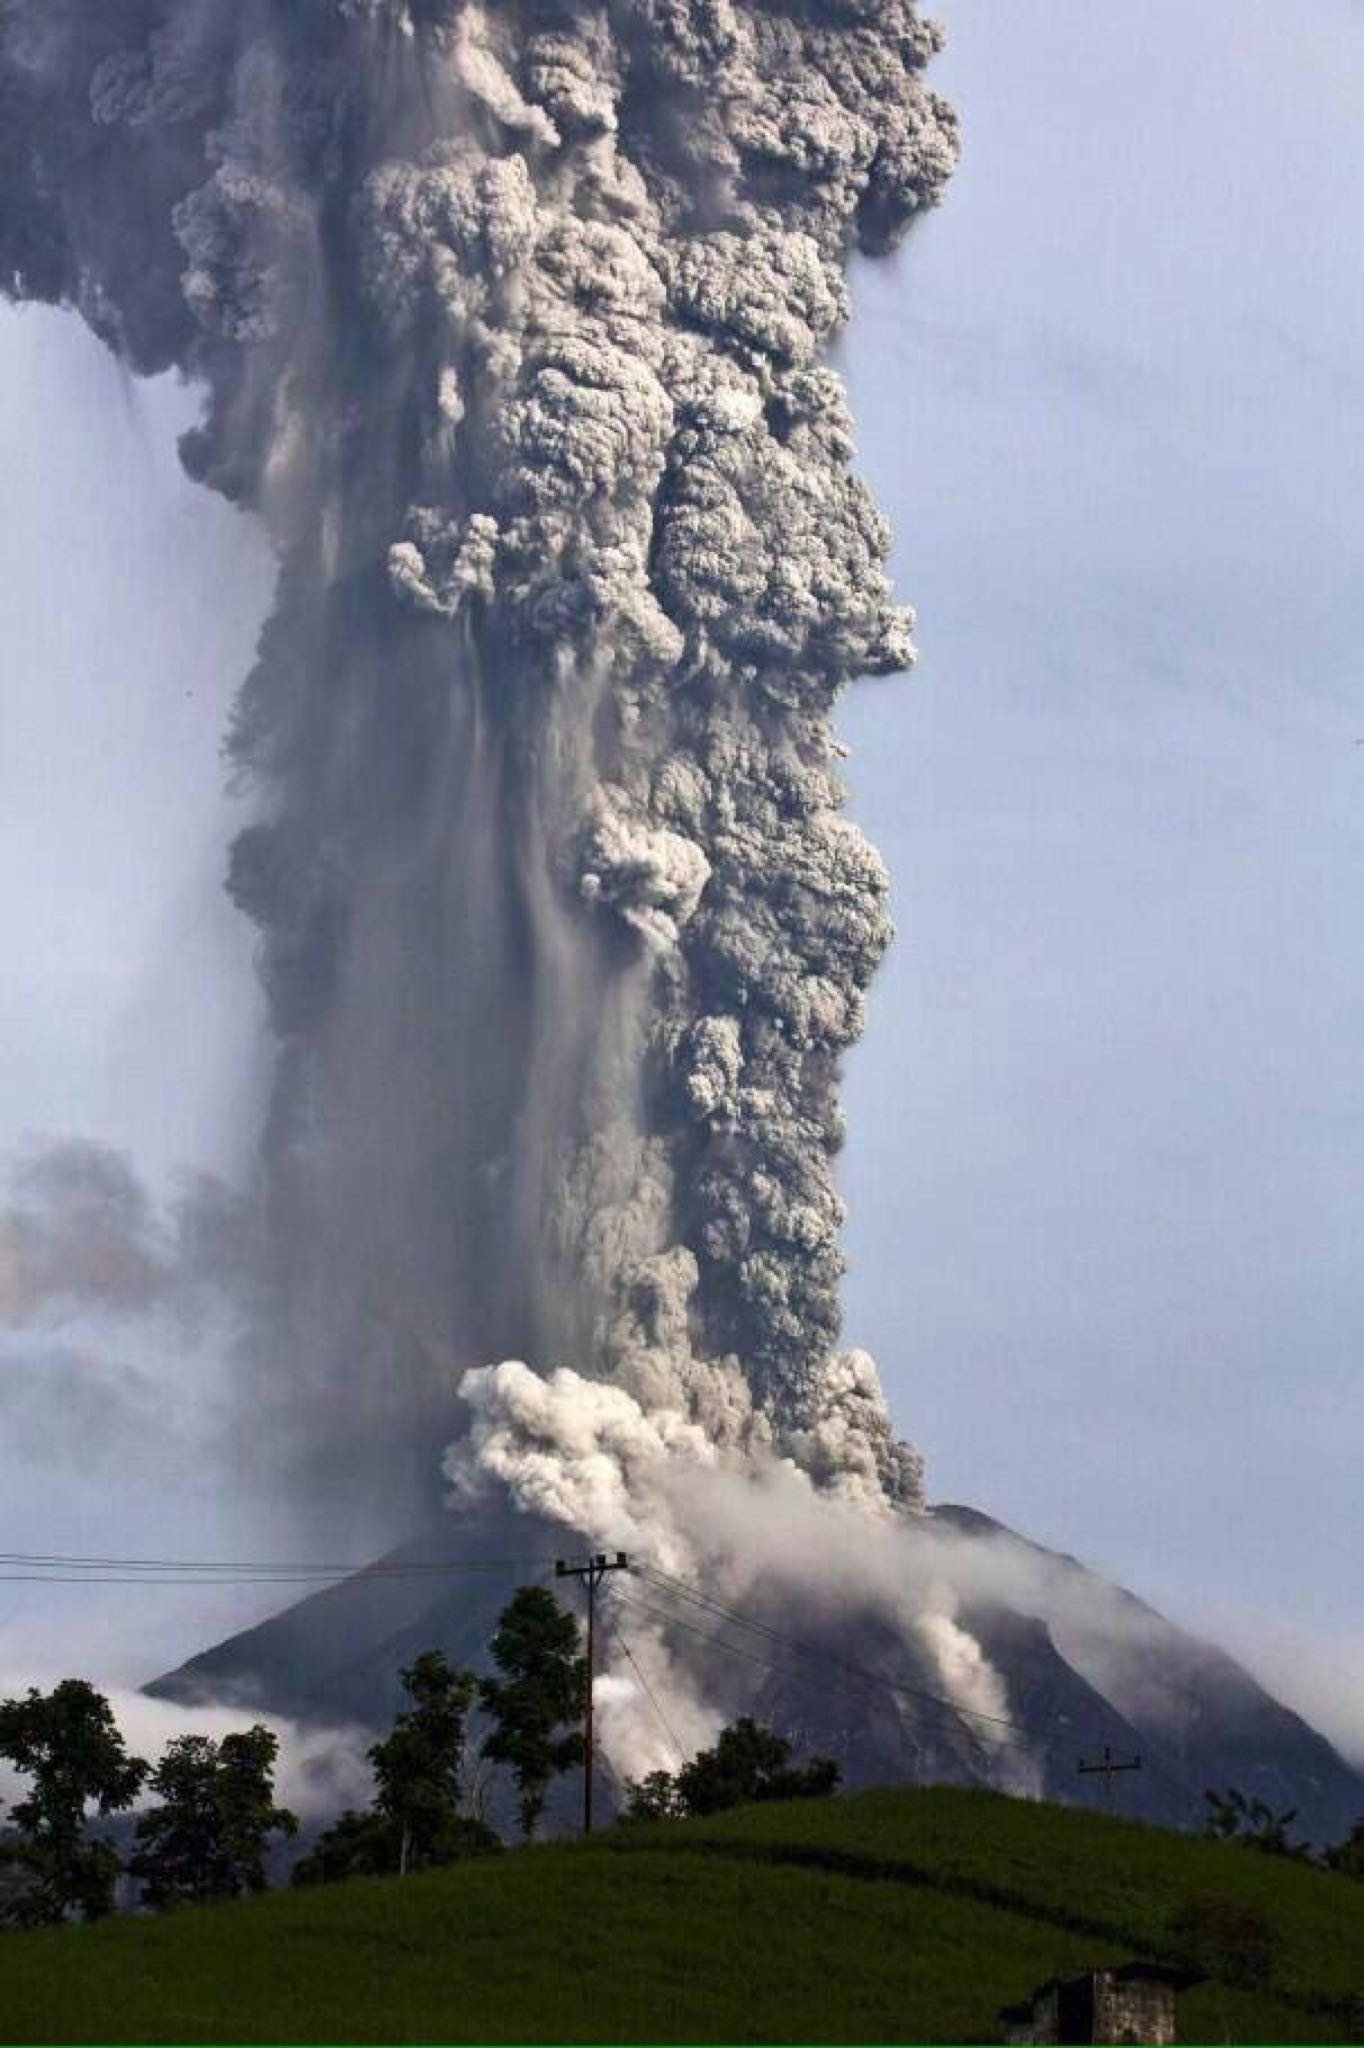 Volcano in Colima, Mexico that just erupted http://t.co/6wvKLtEtbu